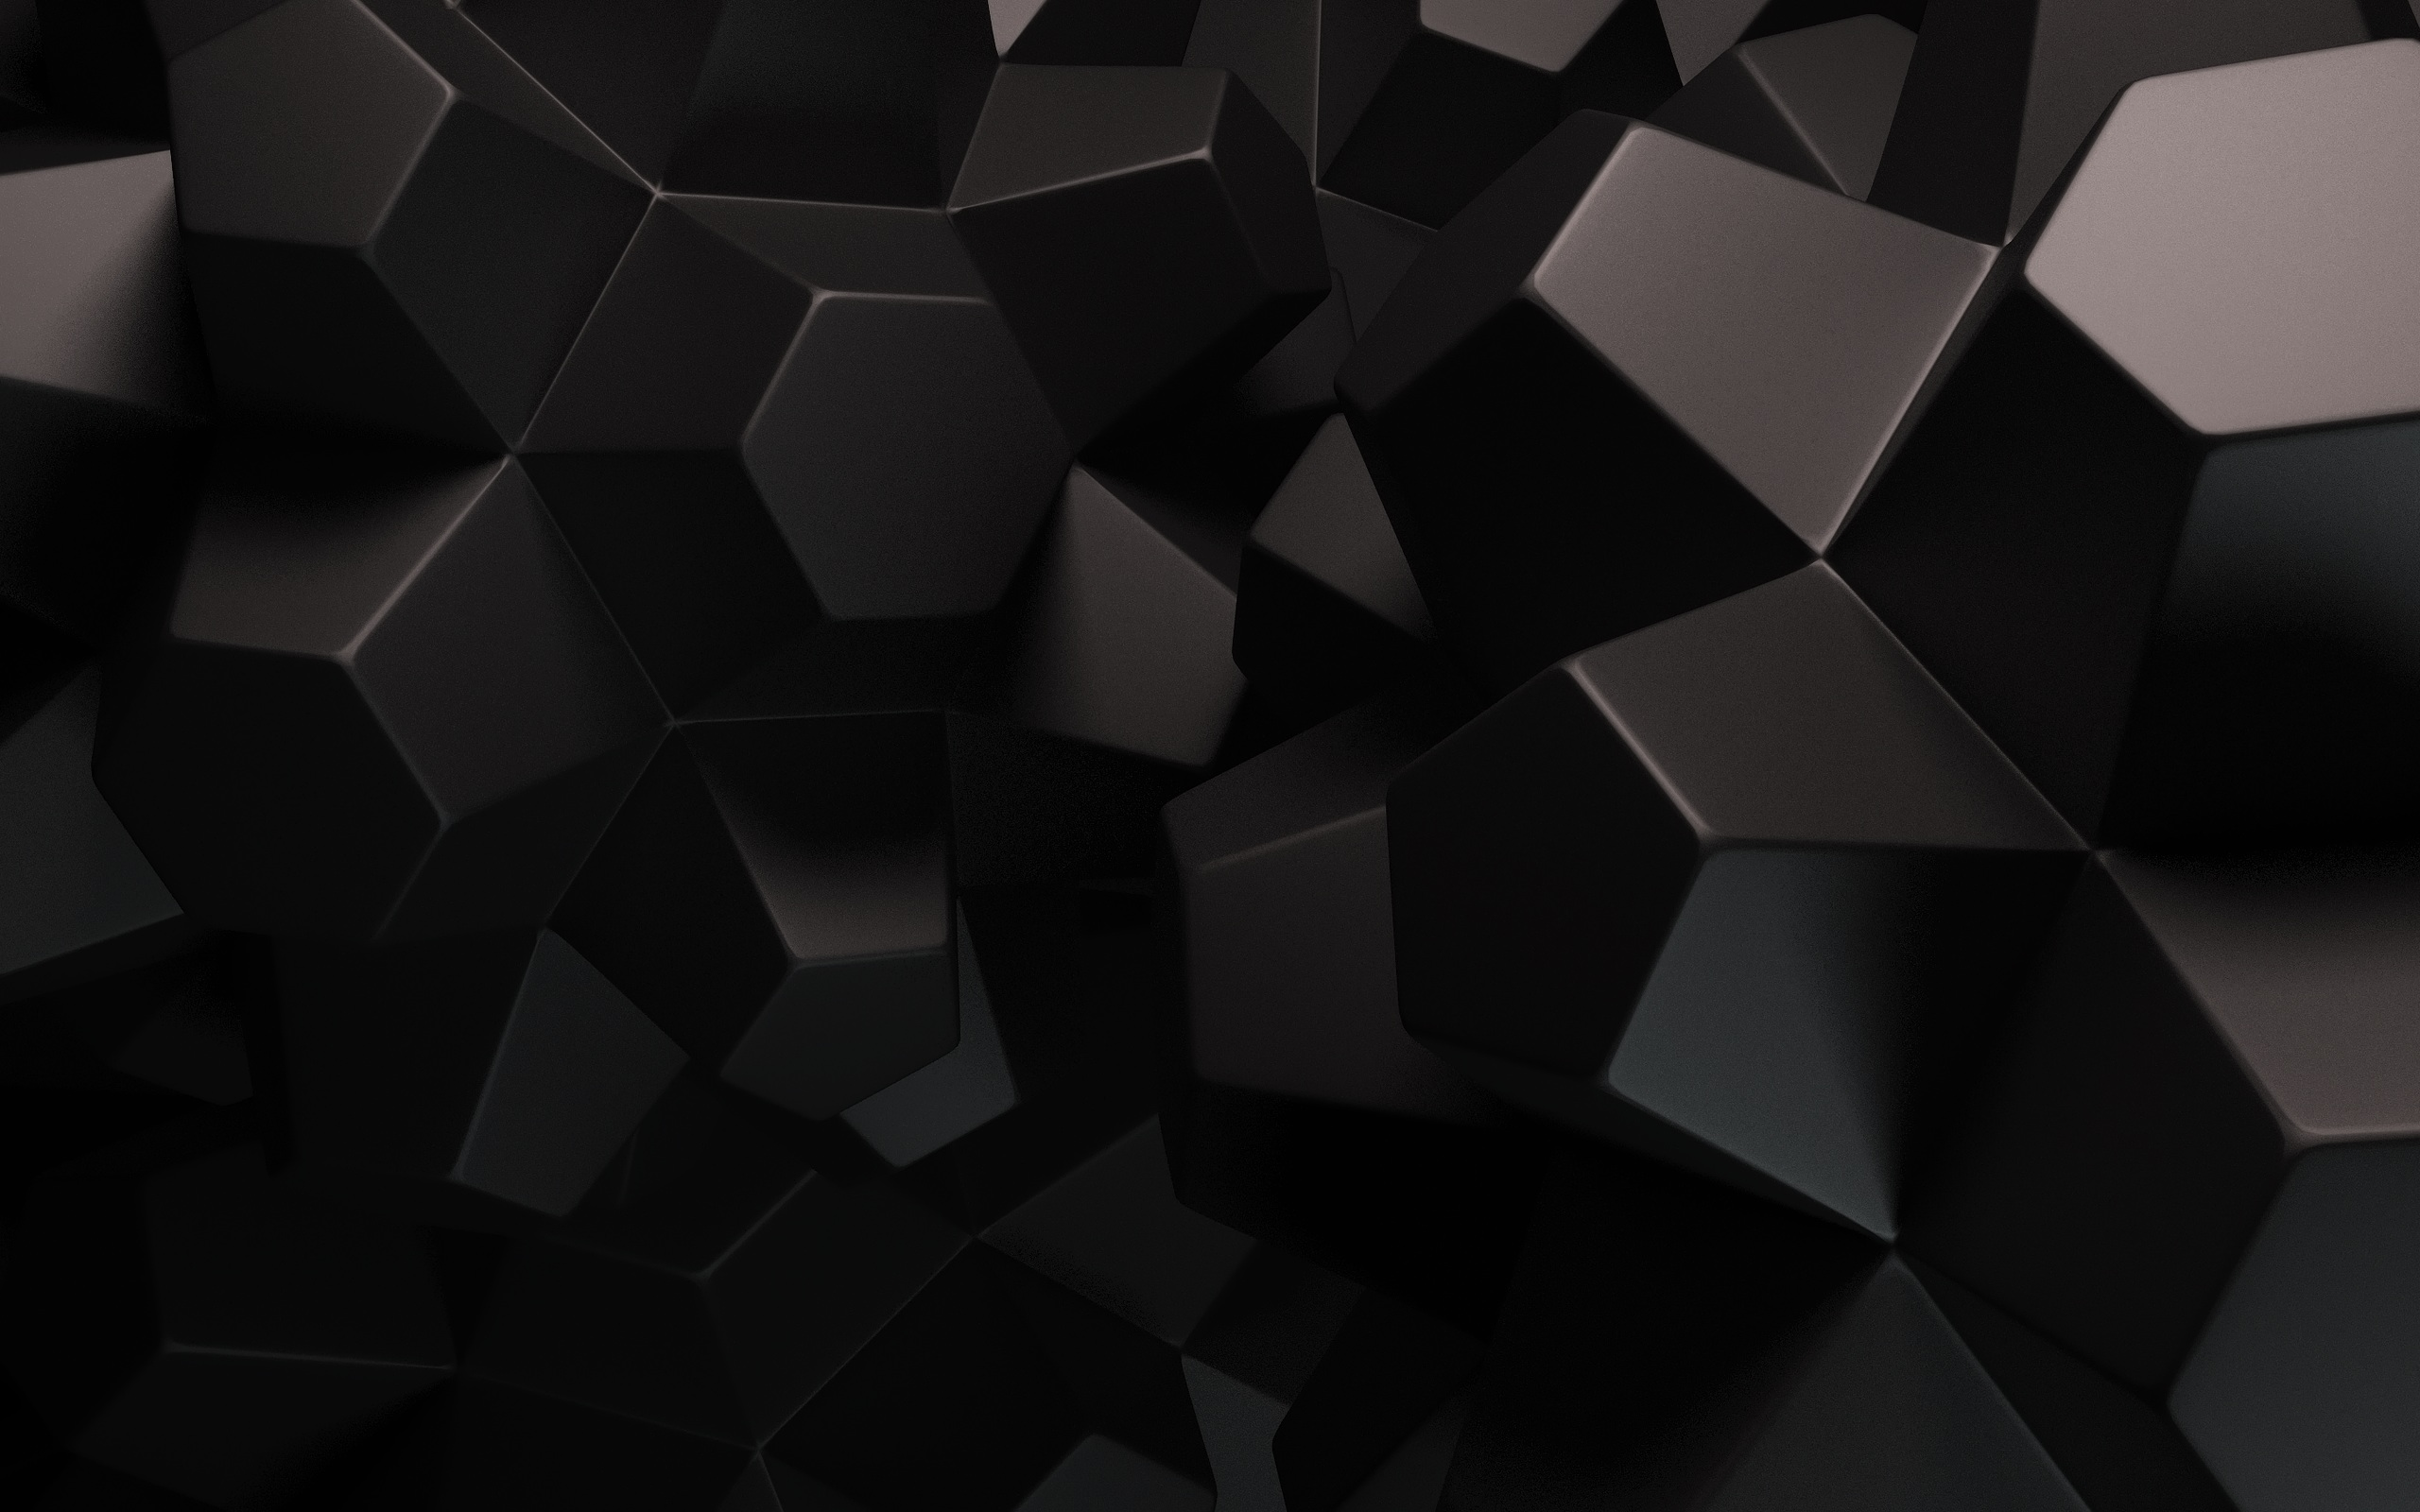 2560x1600 Abstract Black Shapes desktop PC and Mac wallpaper